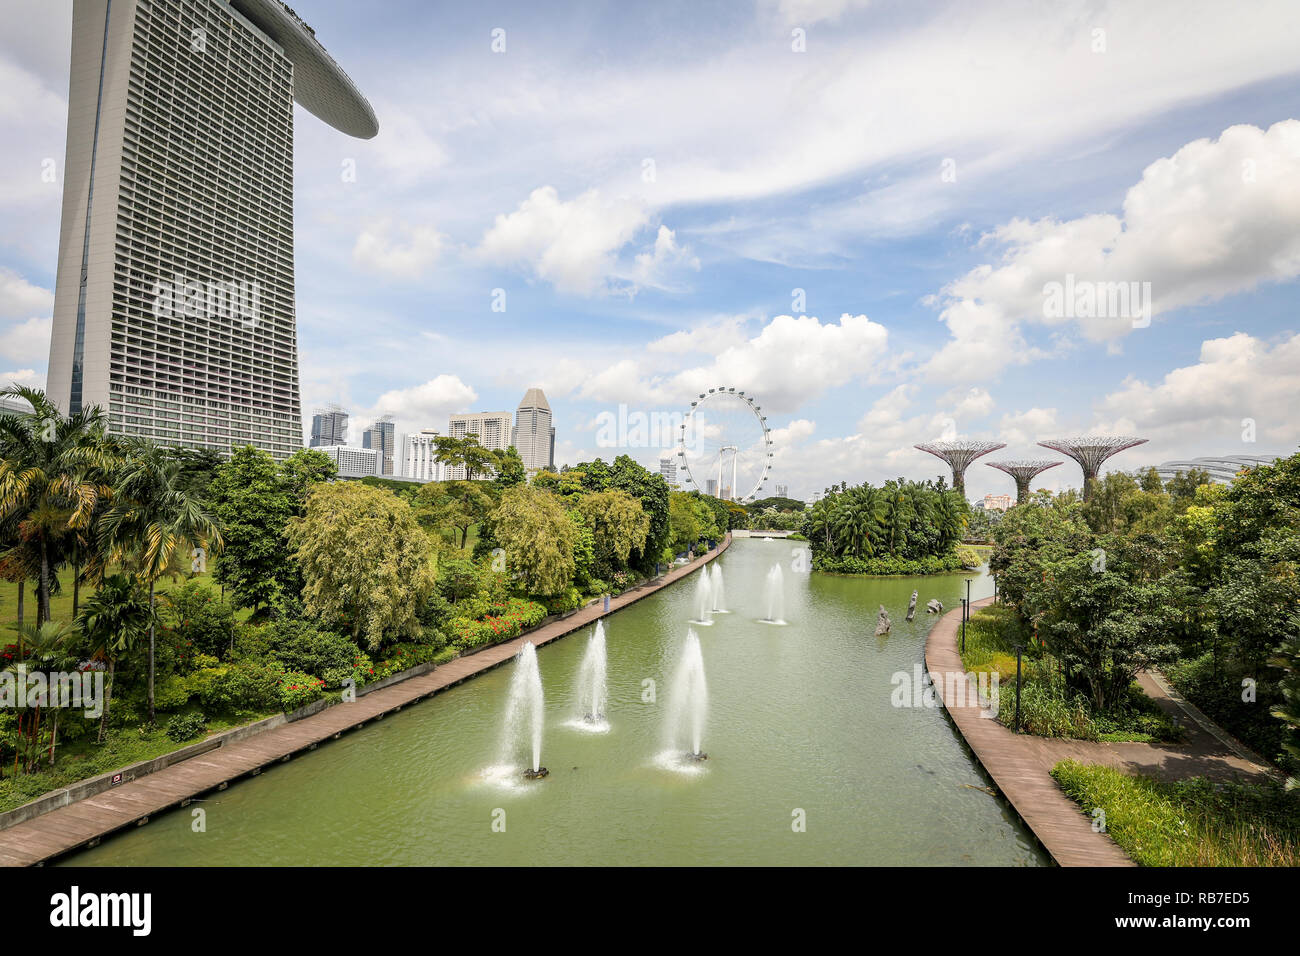 Singapore - december 2018: Dragonfly lake in the botanical garden, Gardens by the Bay in Singapore. Stock Photo